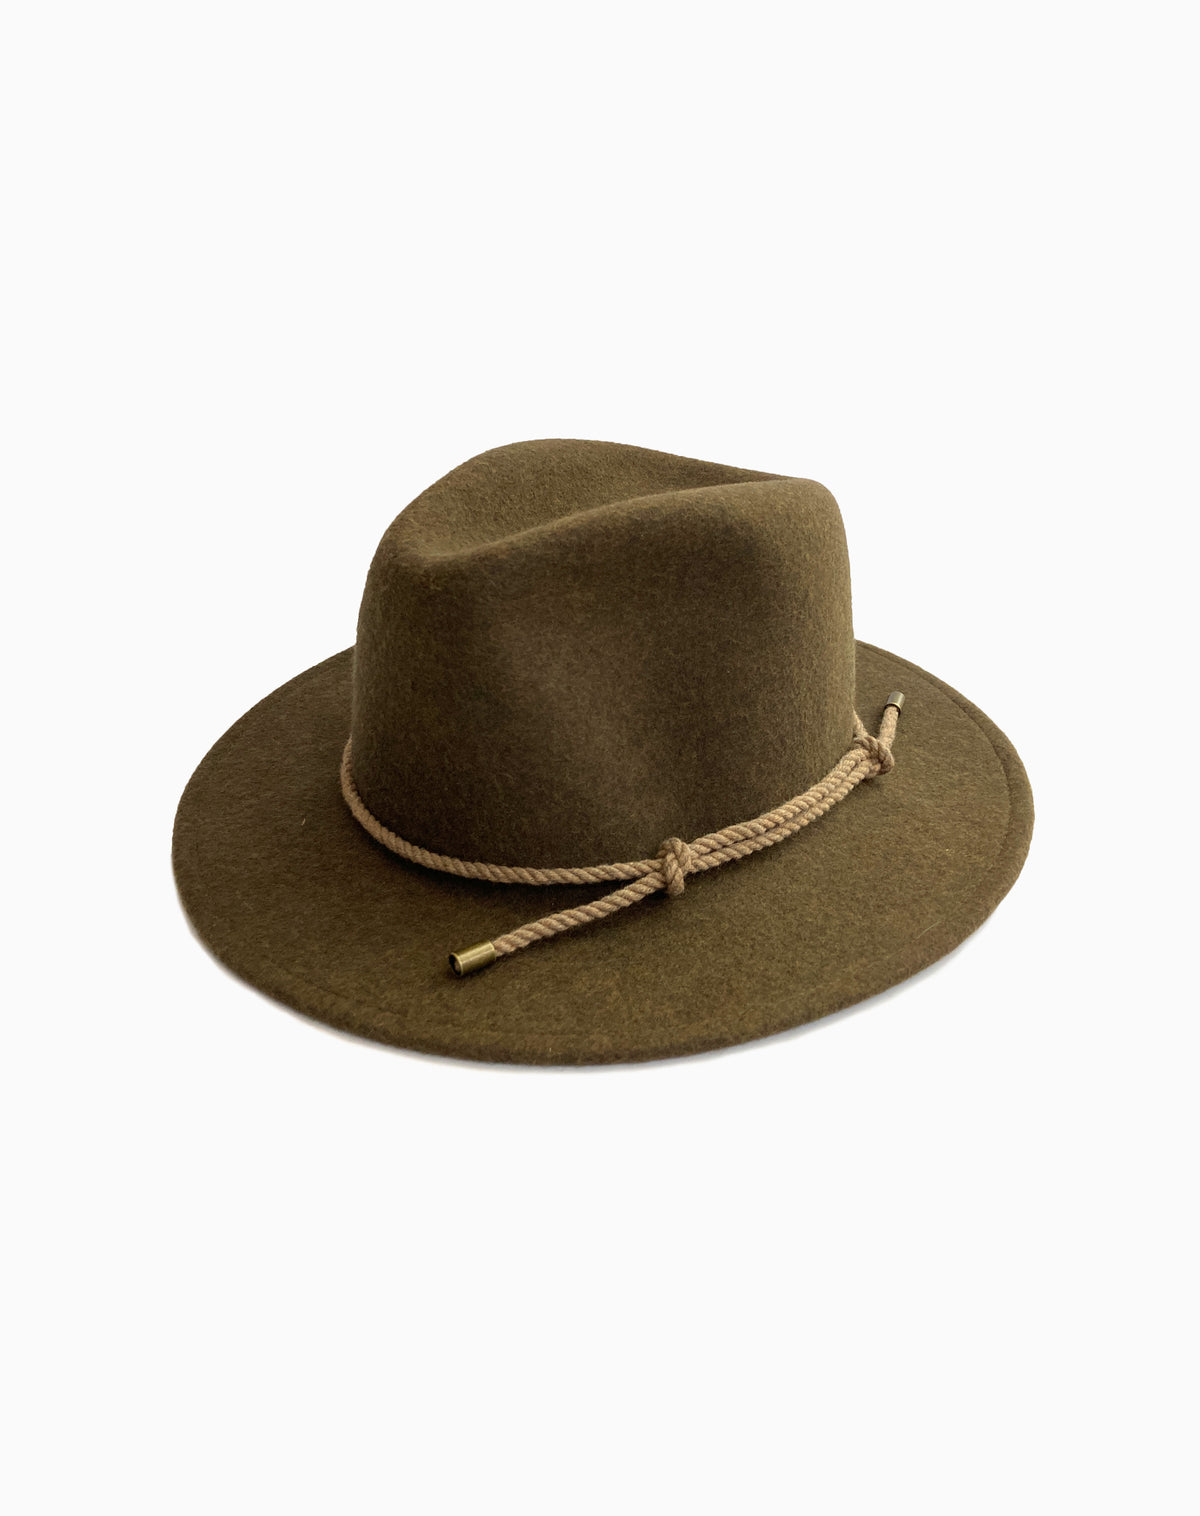 Beaufort Wool Felt Hat in Loden Mix